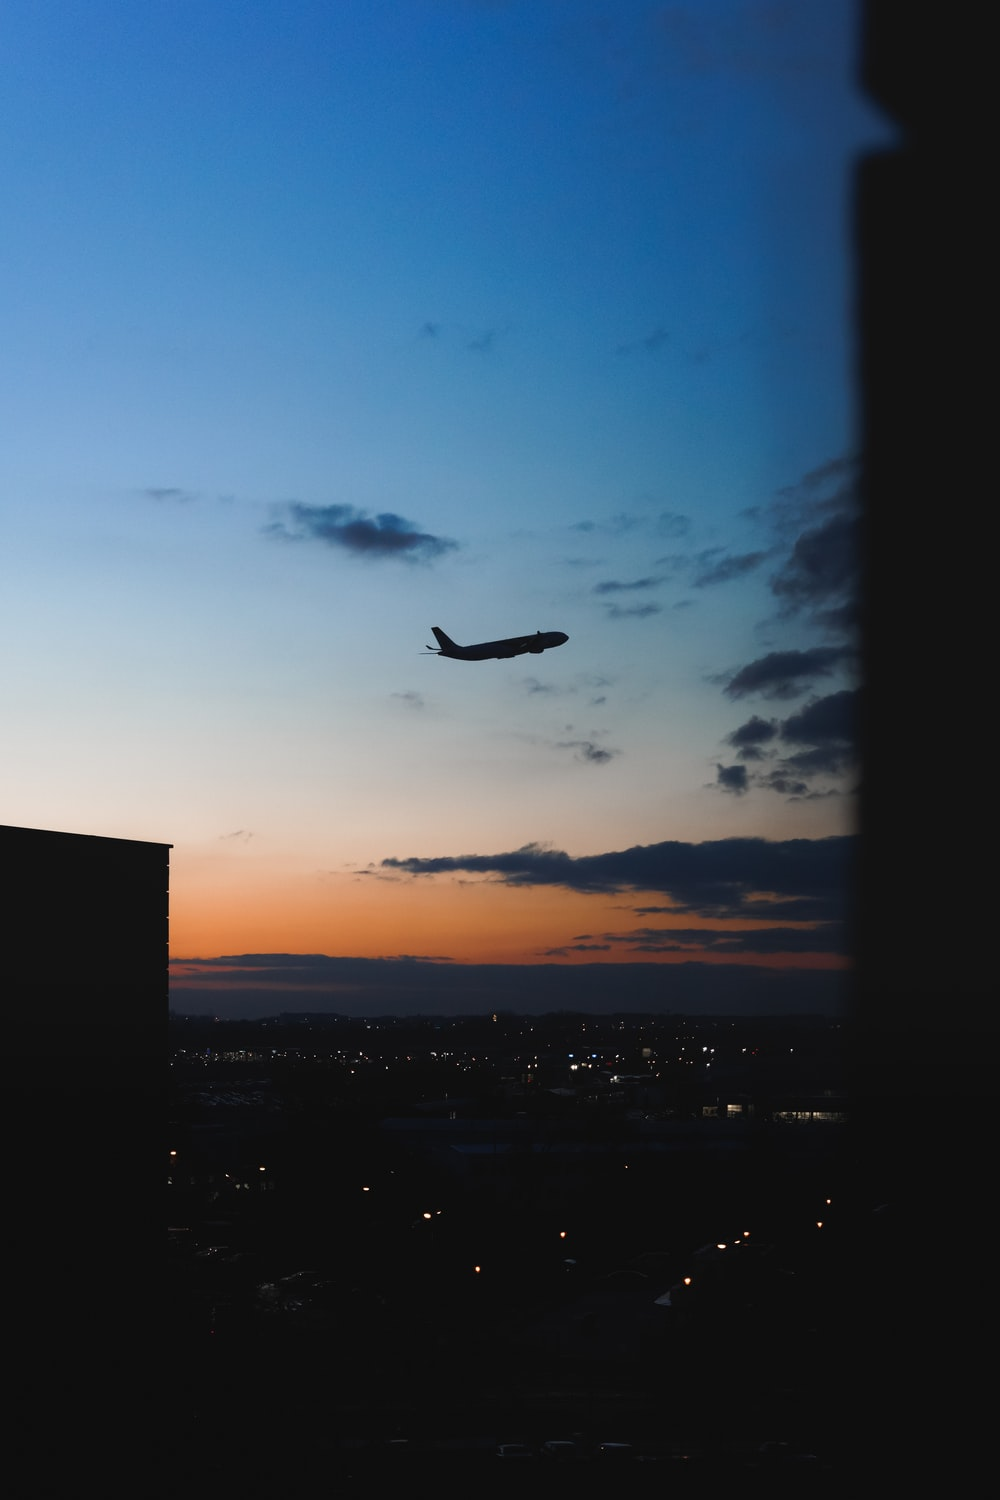 silhouette of bird flying over the city during sunset